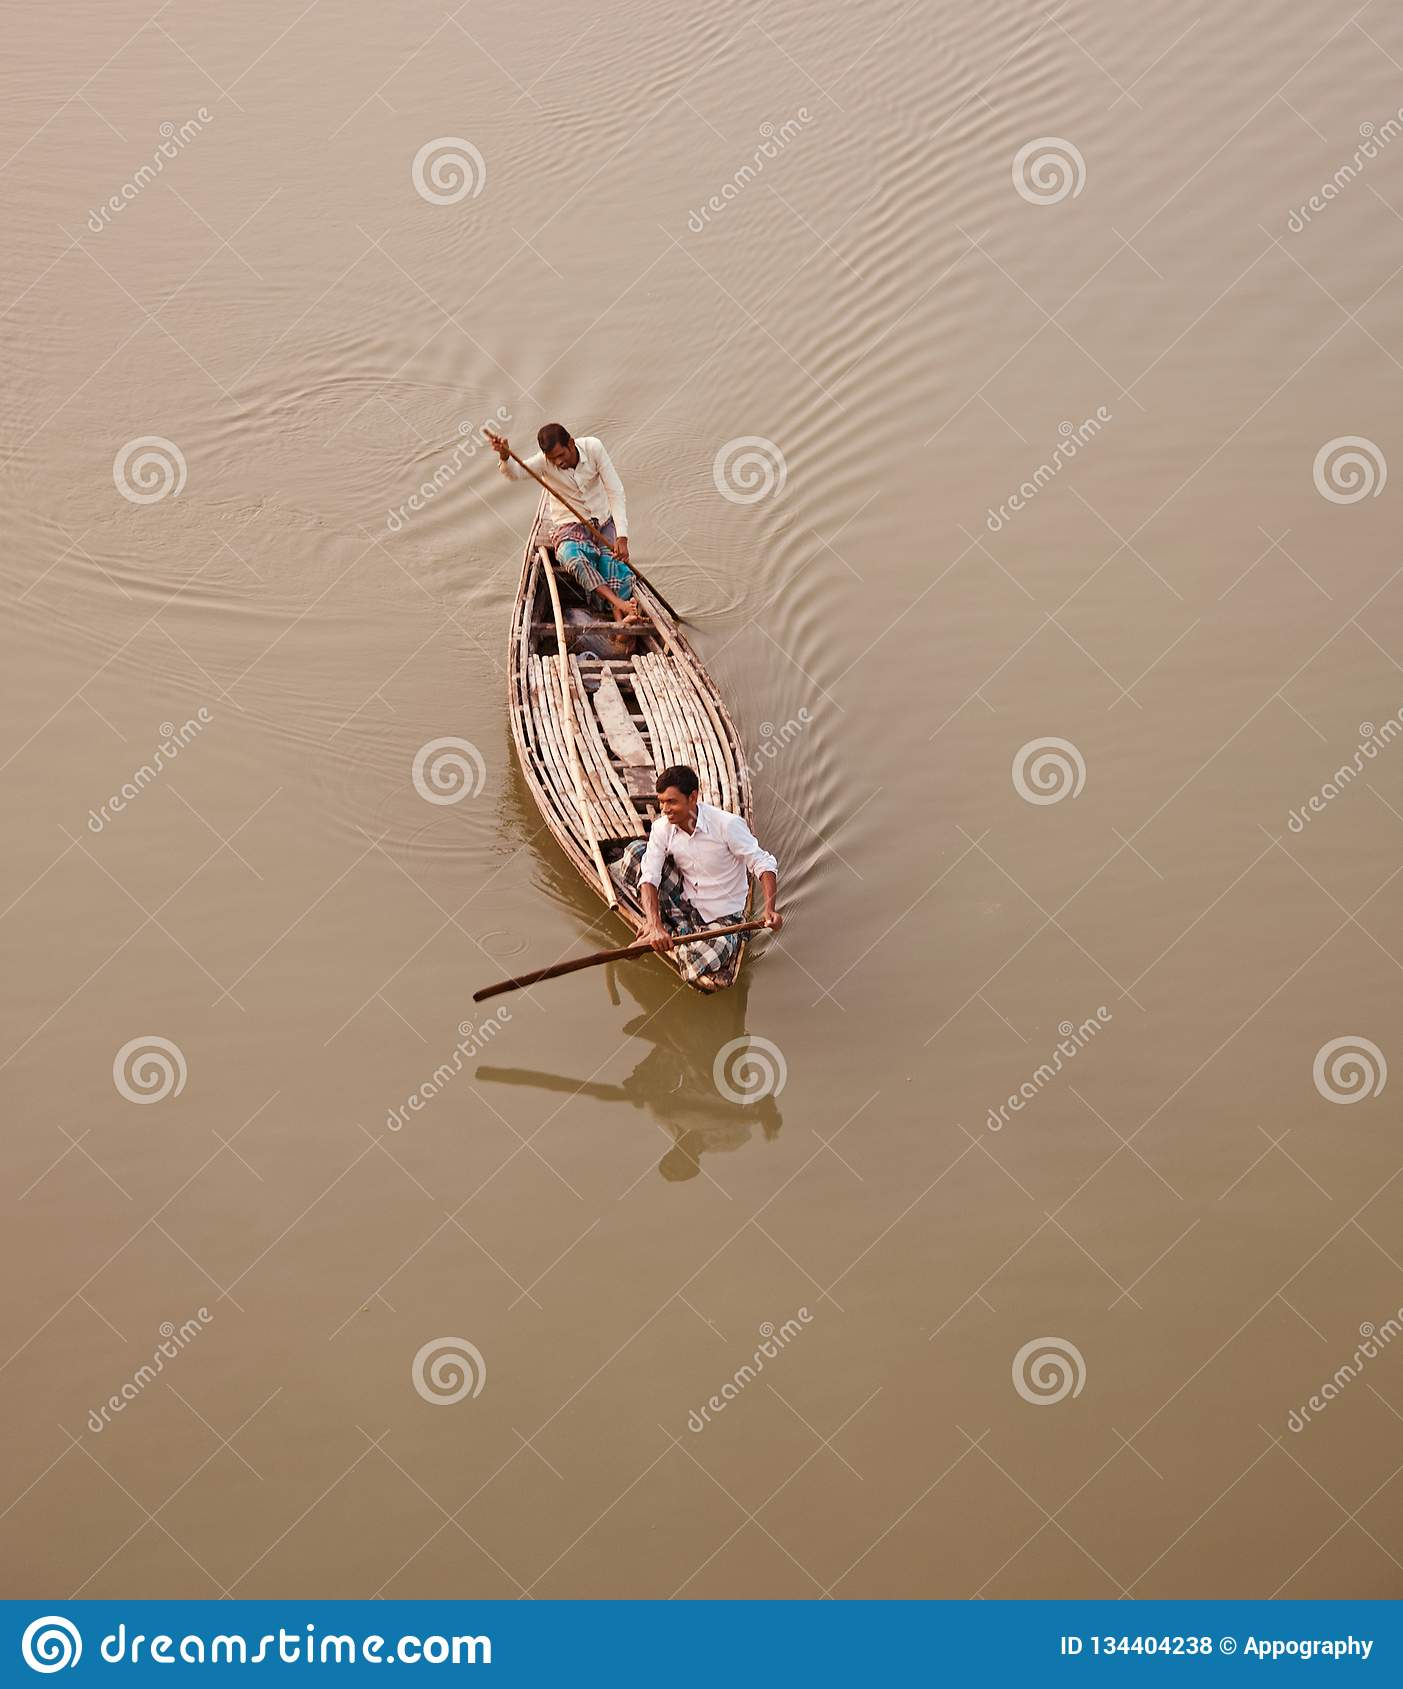 Two men riding on a traditional boat